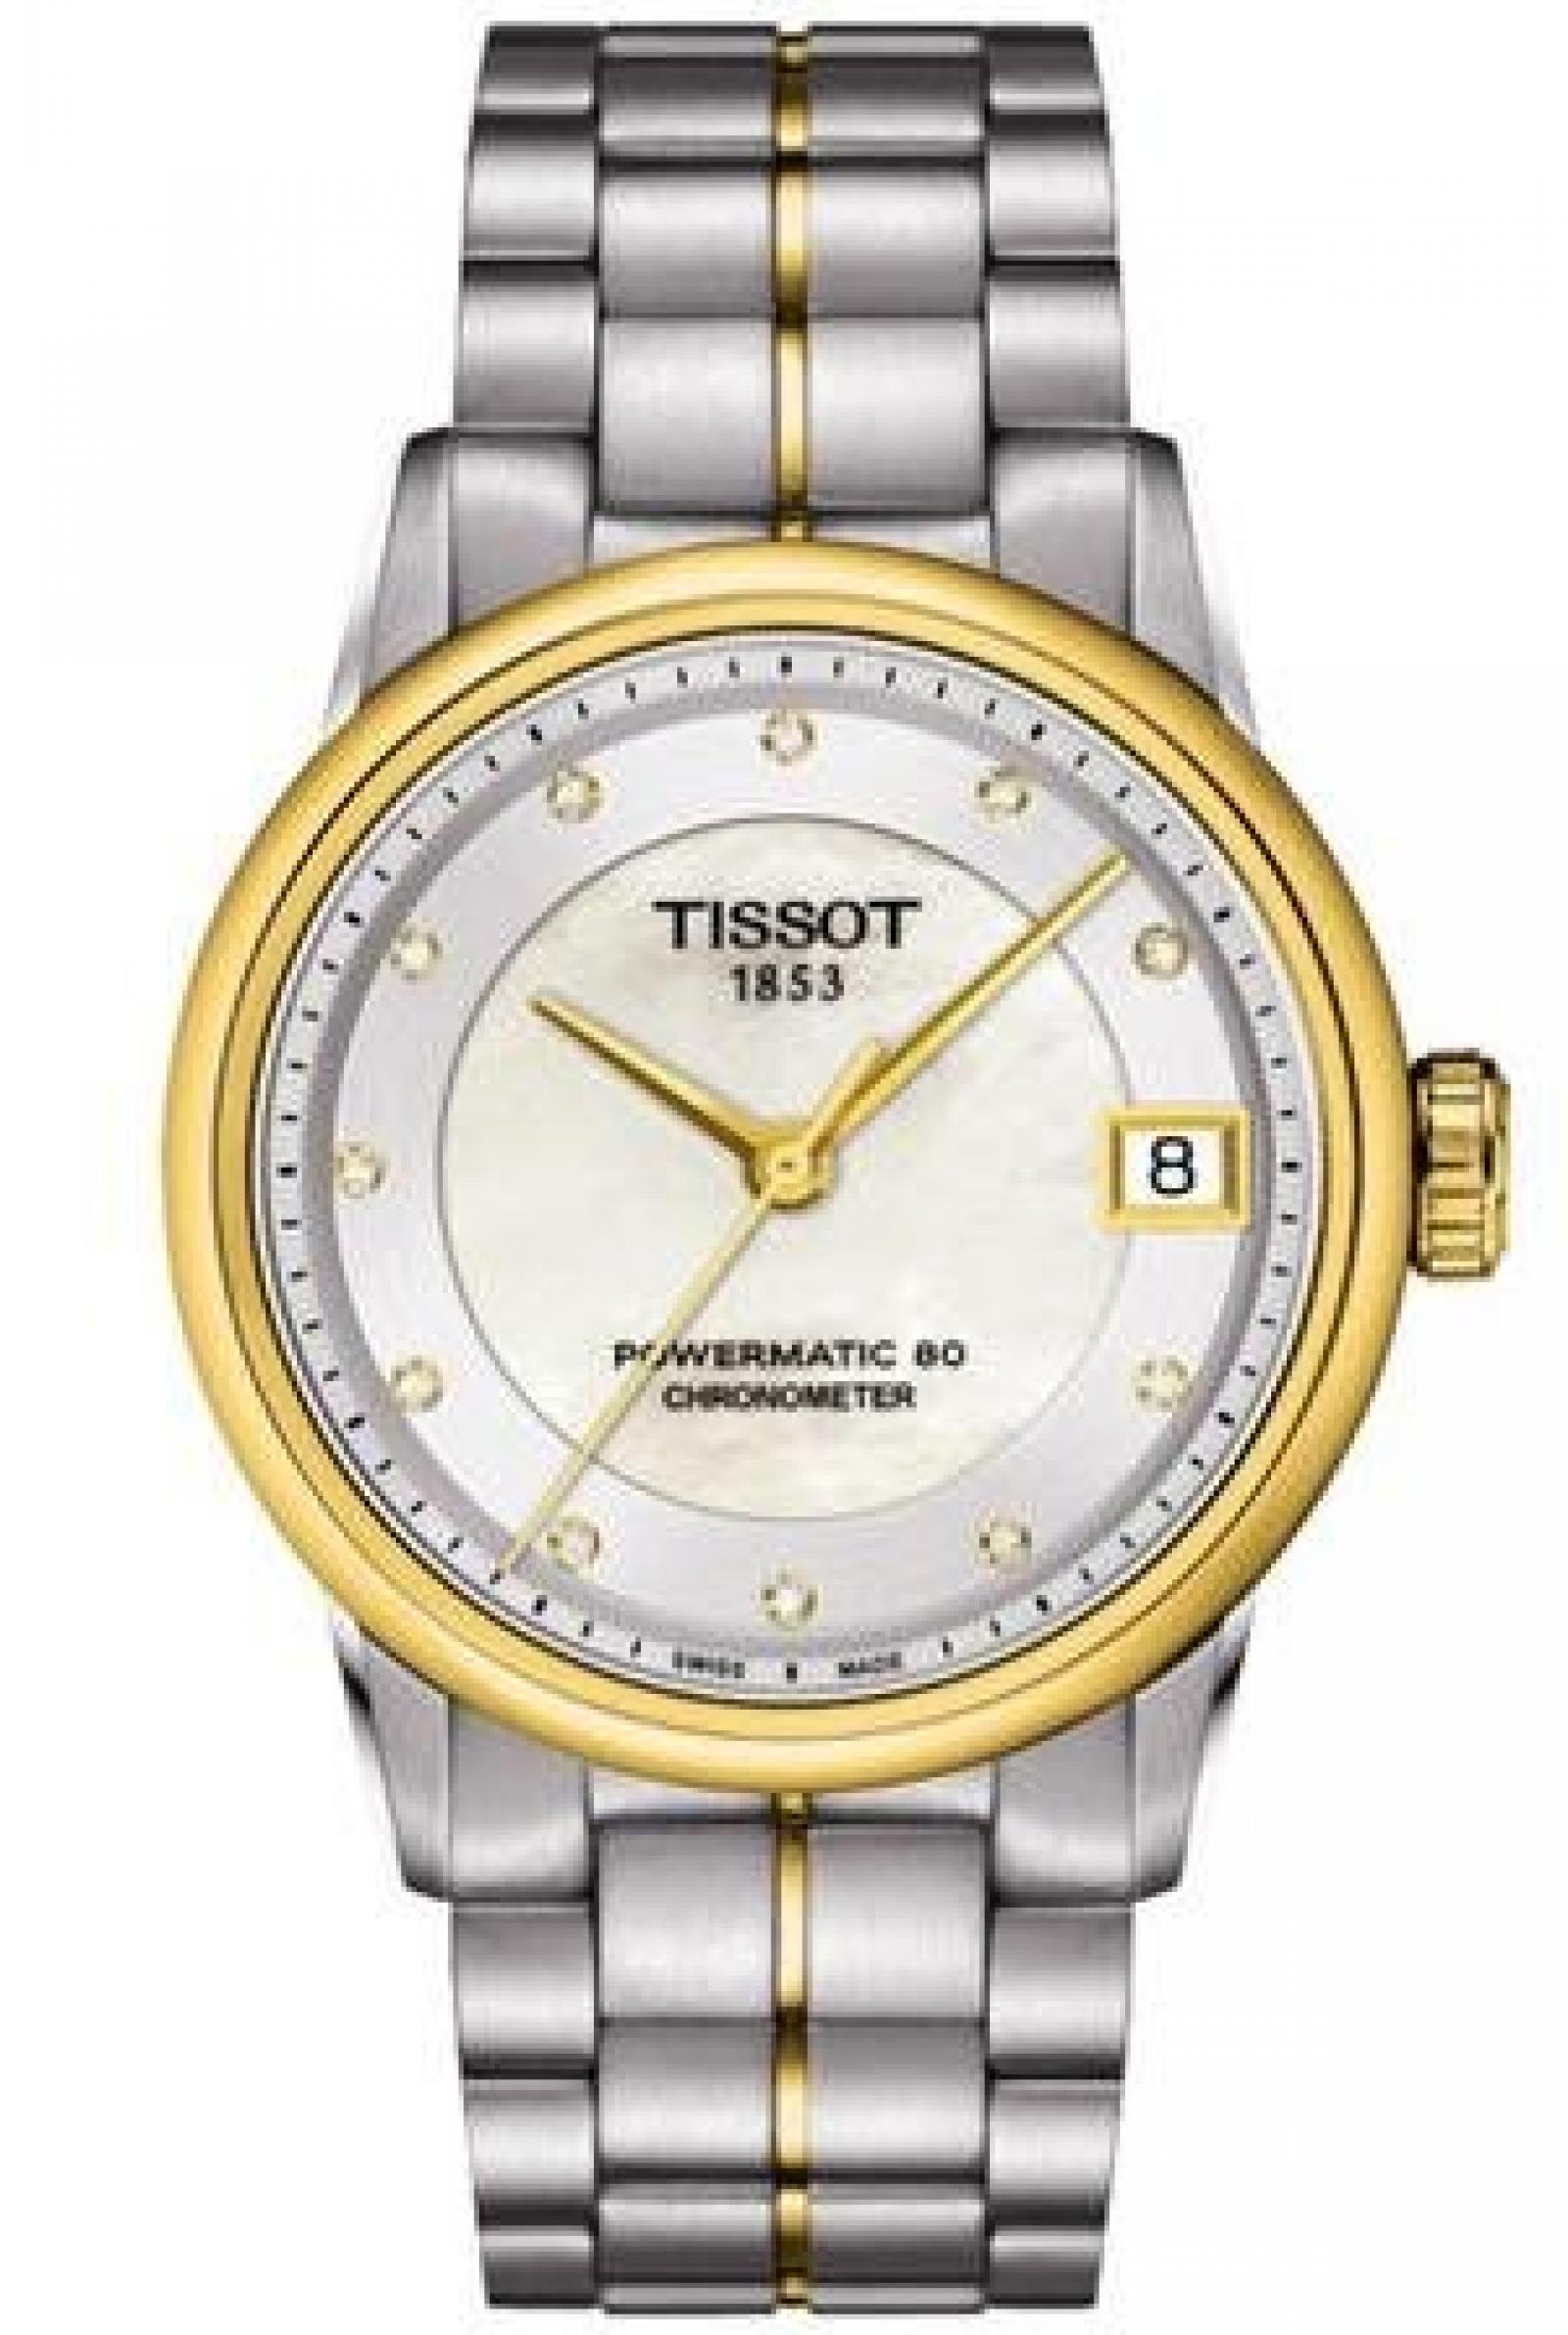 Tissot T-Classic Luxury Automatic COSC Chronometer T086.208.22.116.00